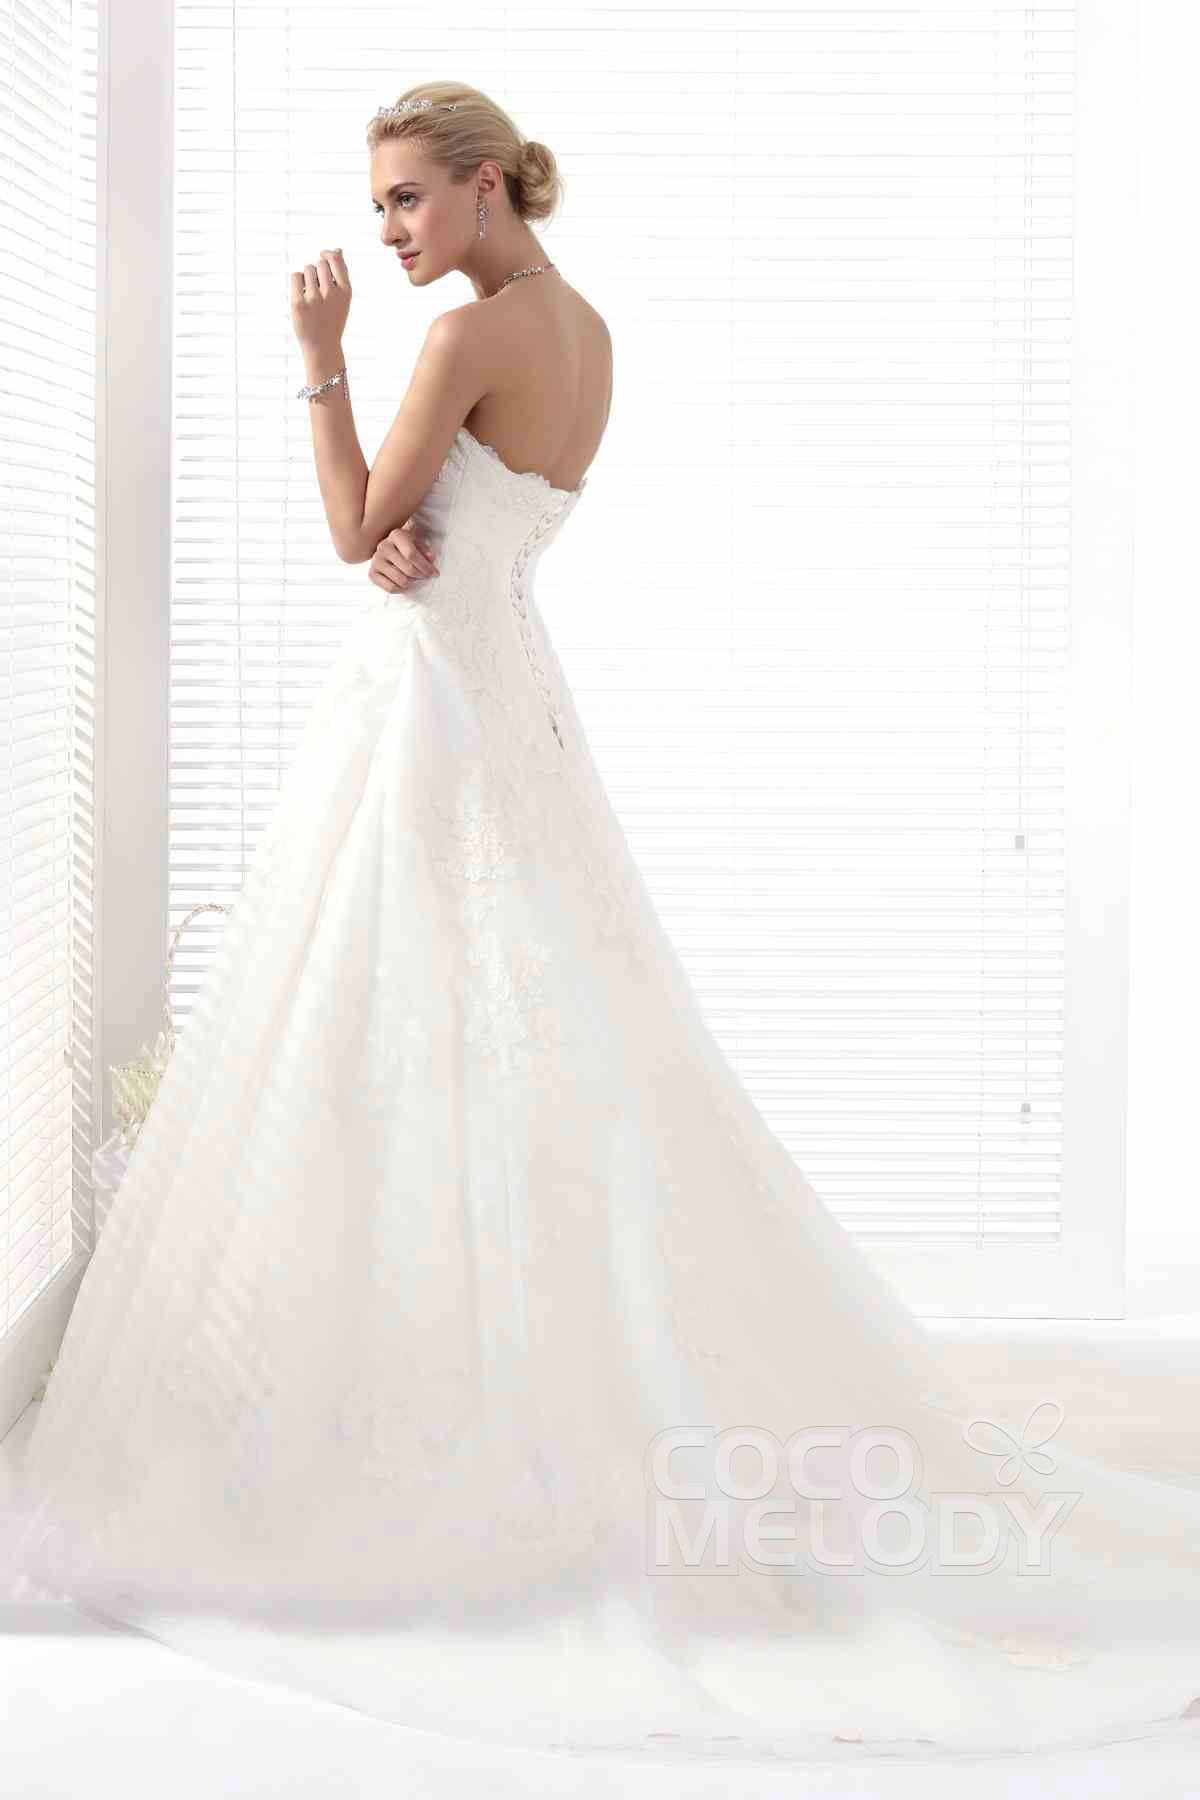 Perfect A-Line Sweetheart Chapel Train Tulle Wedding Dress Alb12283#Cocomelody#weddingdresses#bridalgown#